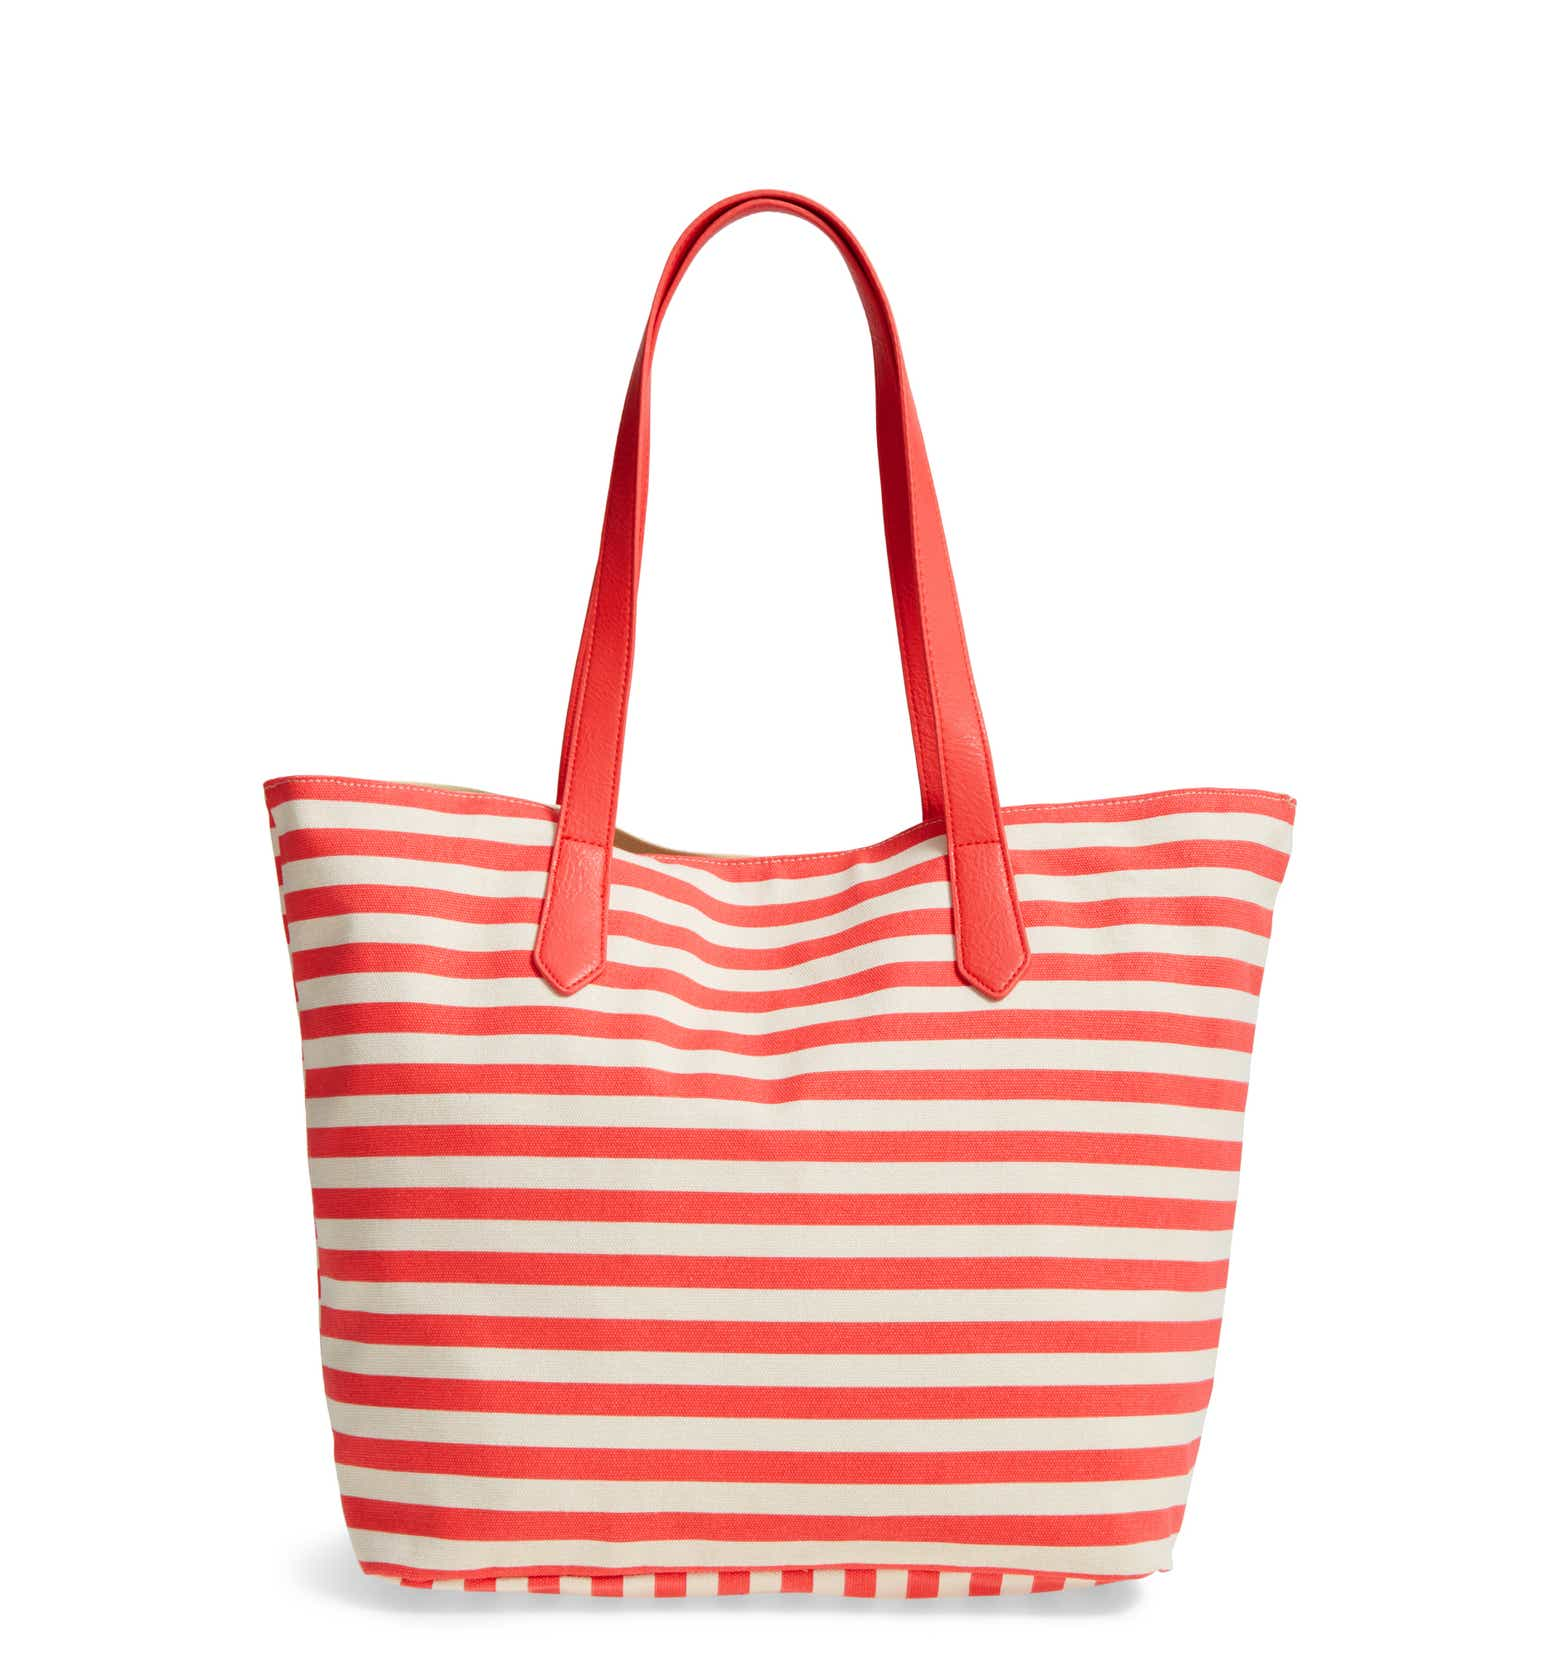 This cute striped tote is only $14.49!